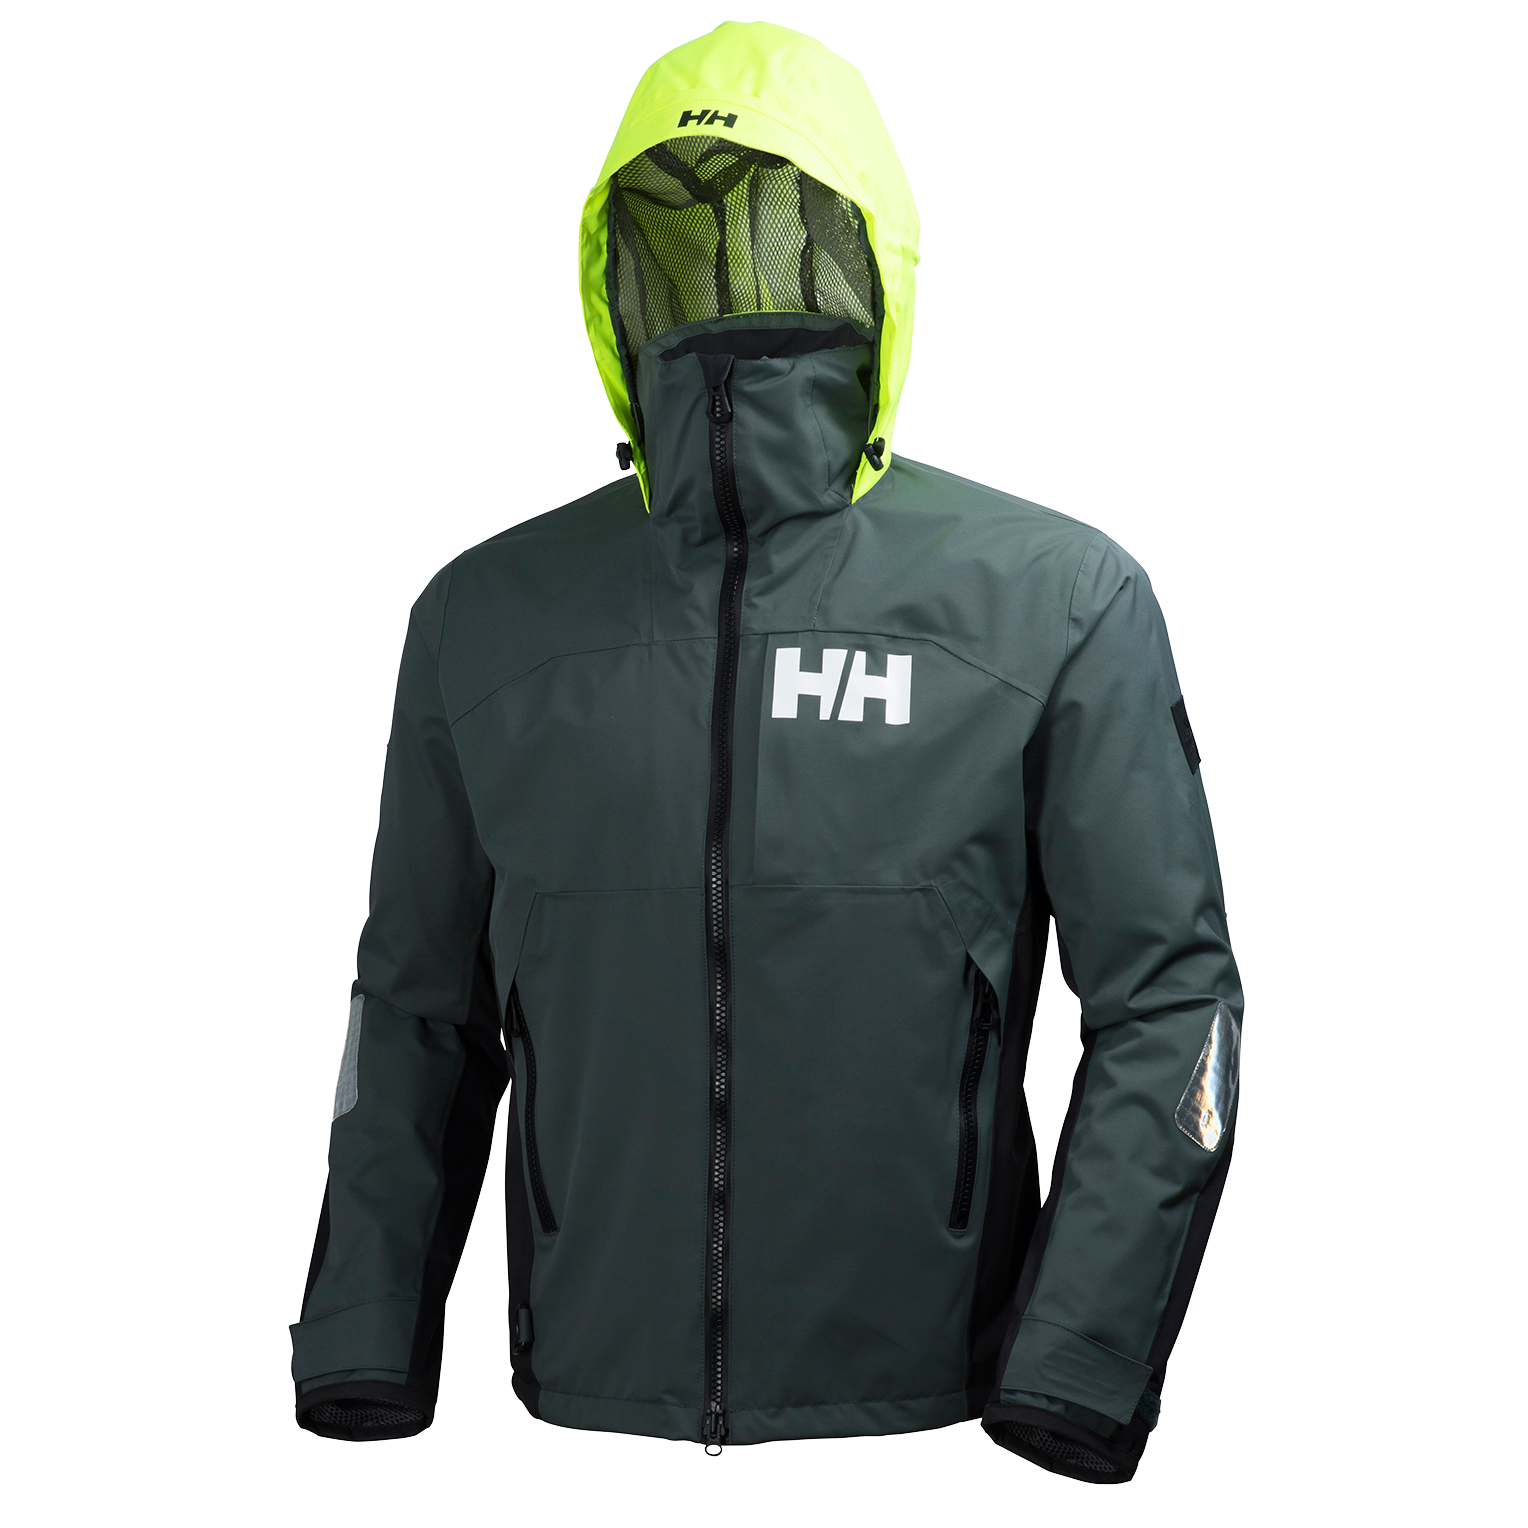 eleganta skor första titt begränsad garanti HP LAKE JACKET - Men - Sailing Jackets - Helly Hansen Official ...